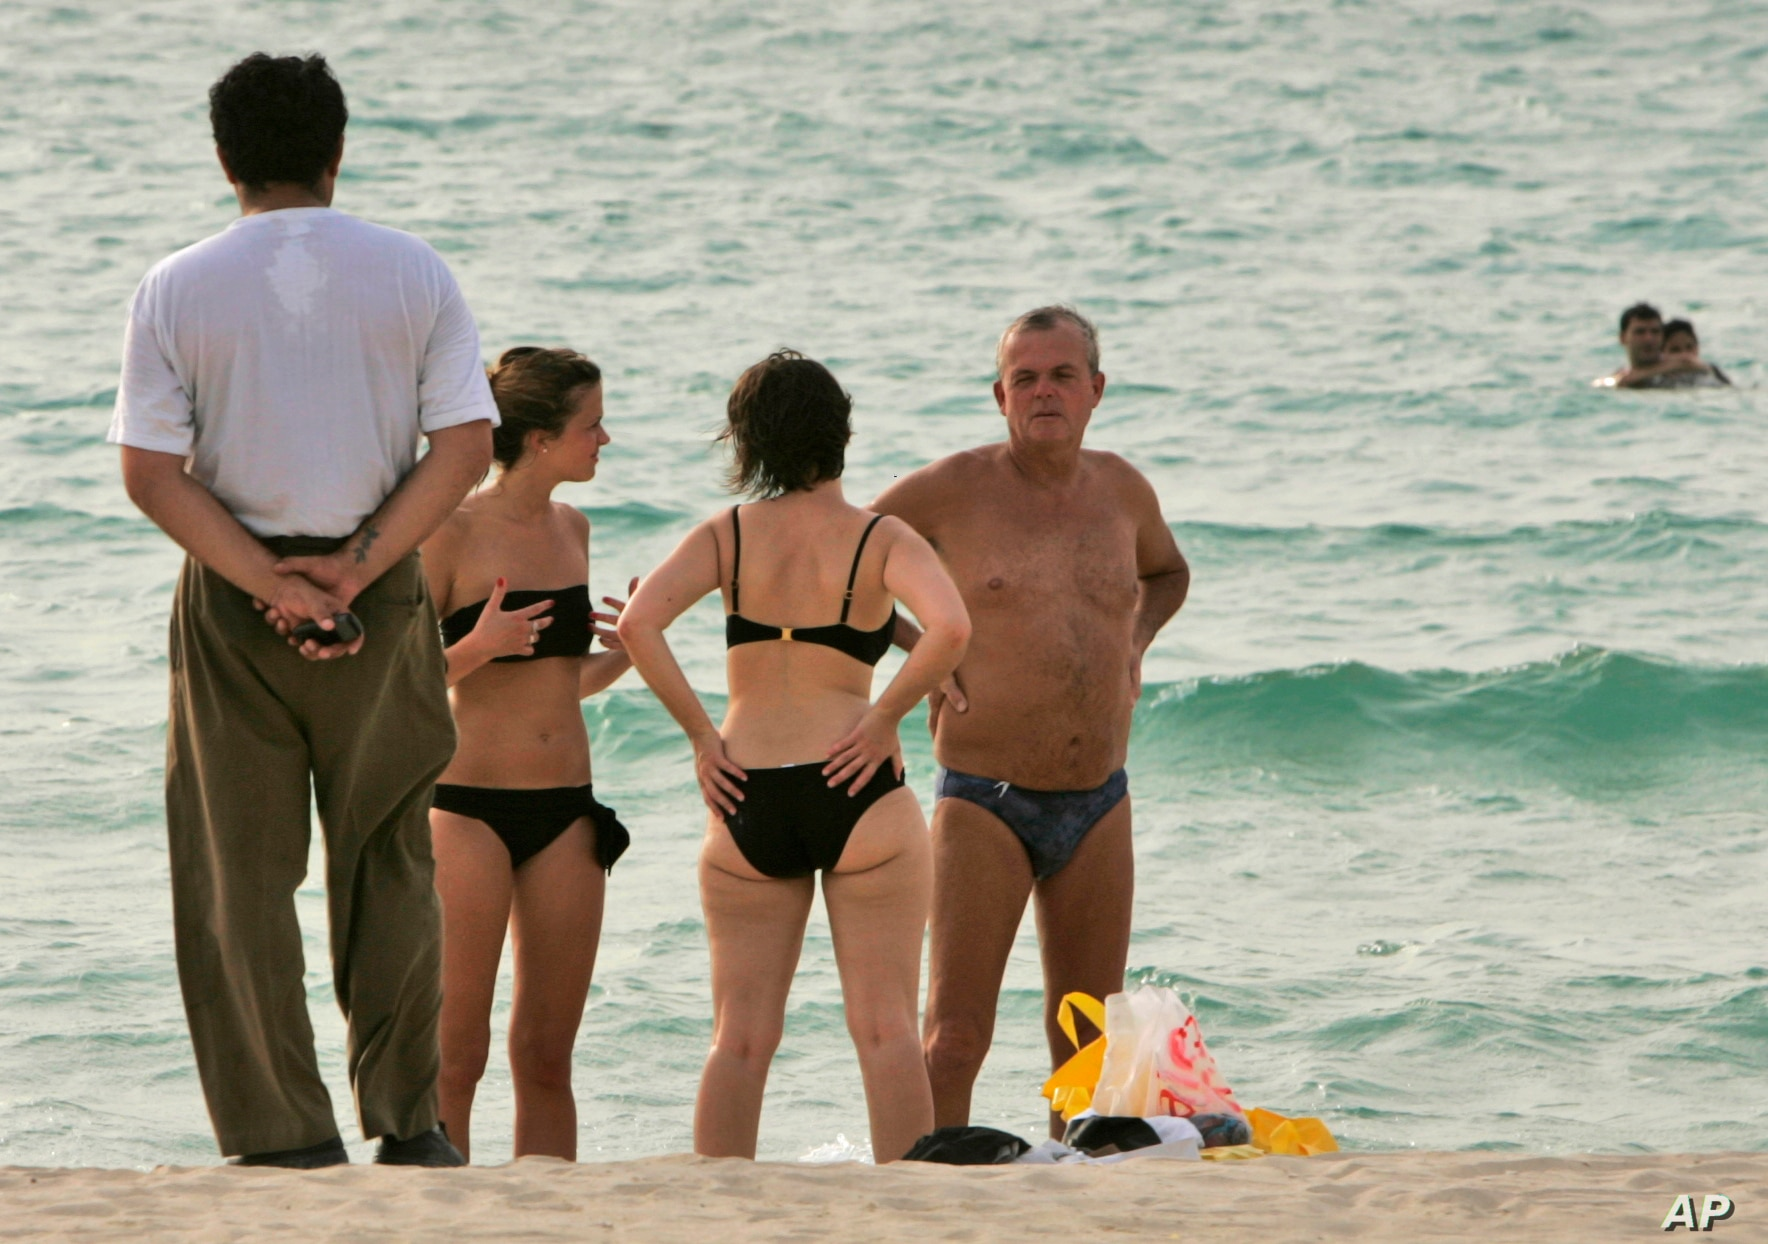 Girls nude beach selfie group Those Involved In Naked Photo Shoot In Dubai To Be Deported Voice Of America English